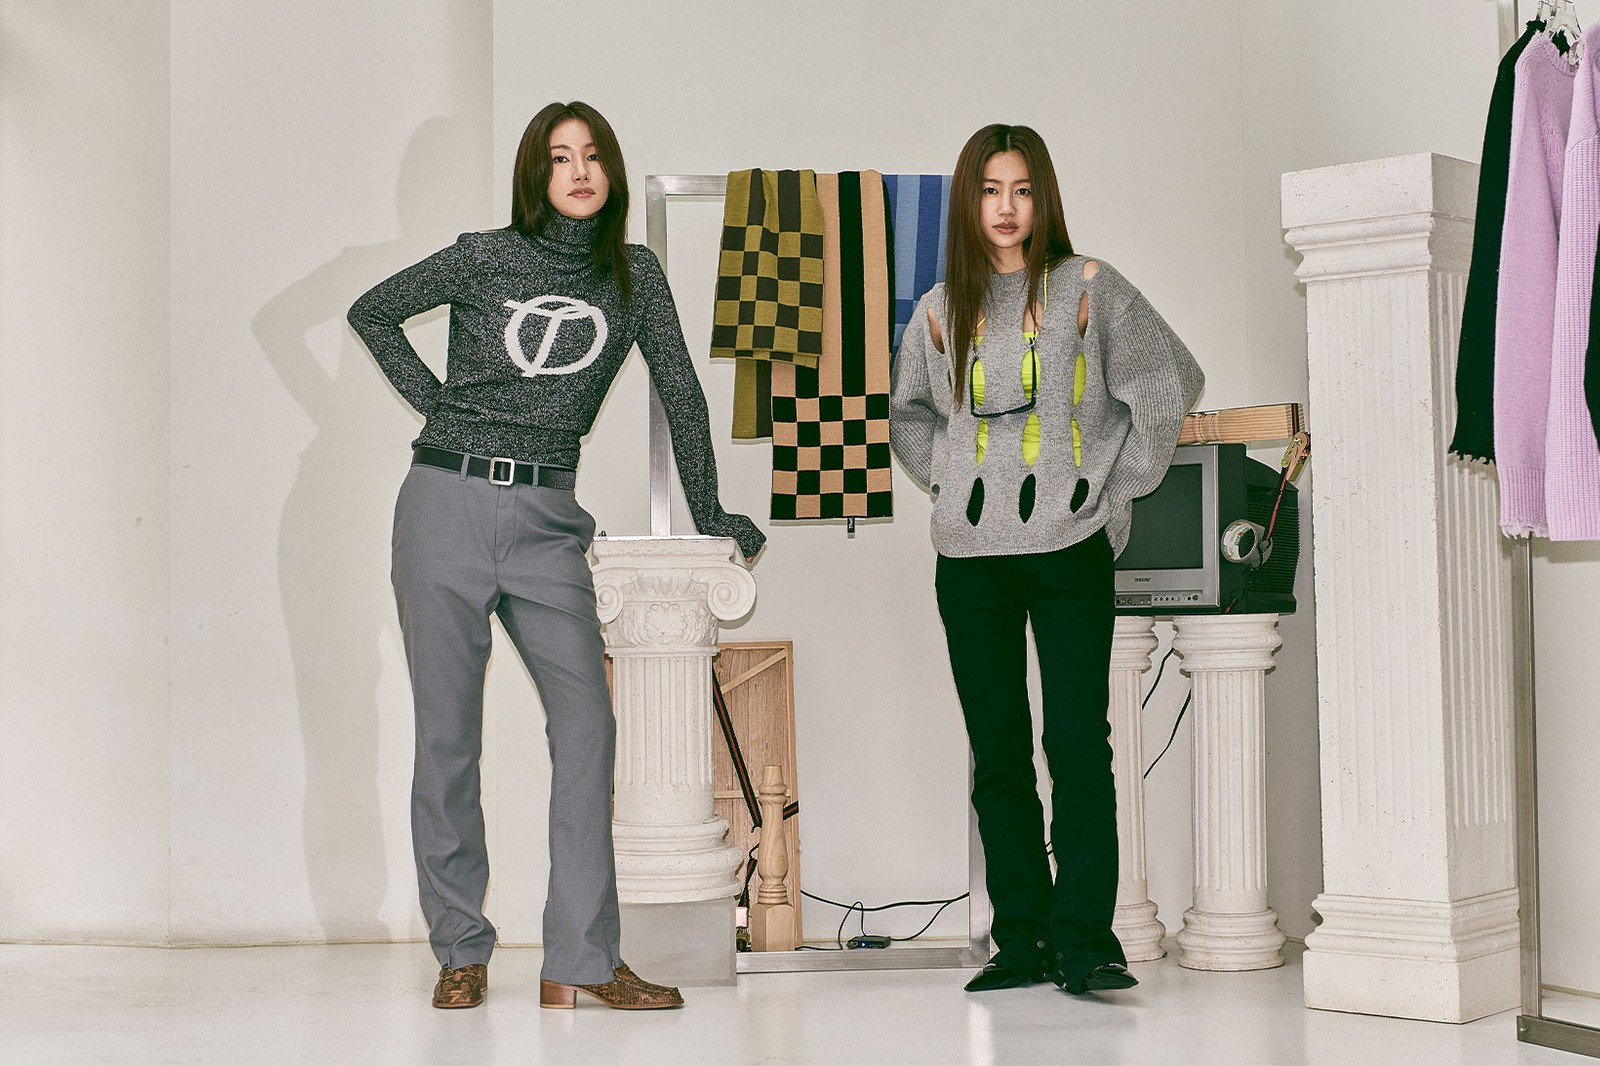 TheOpen Product Seoul Korean Fashion Brand Founders Boyoung Jiyoung Kim Summer HBXWM Launch Interview